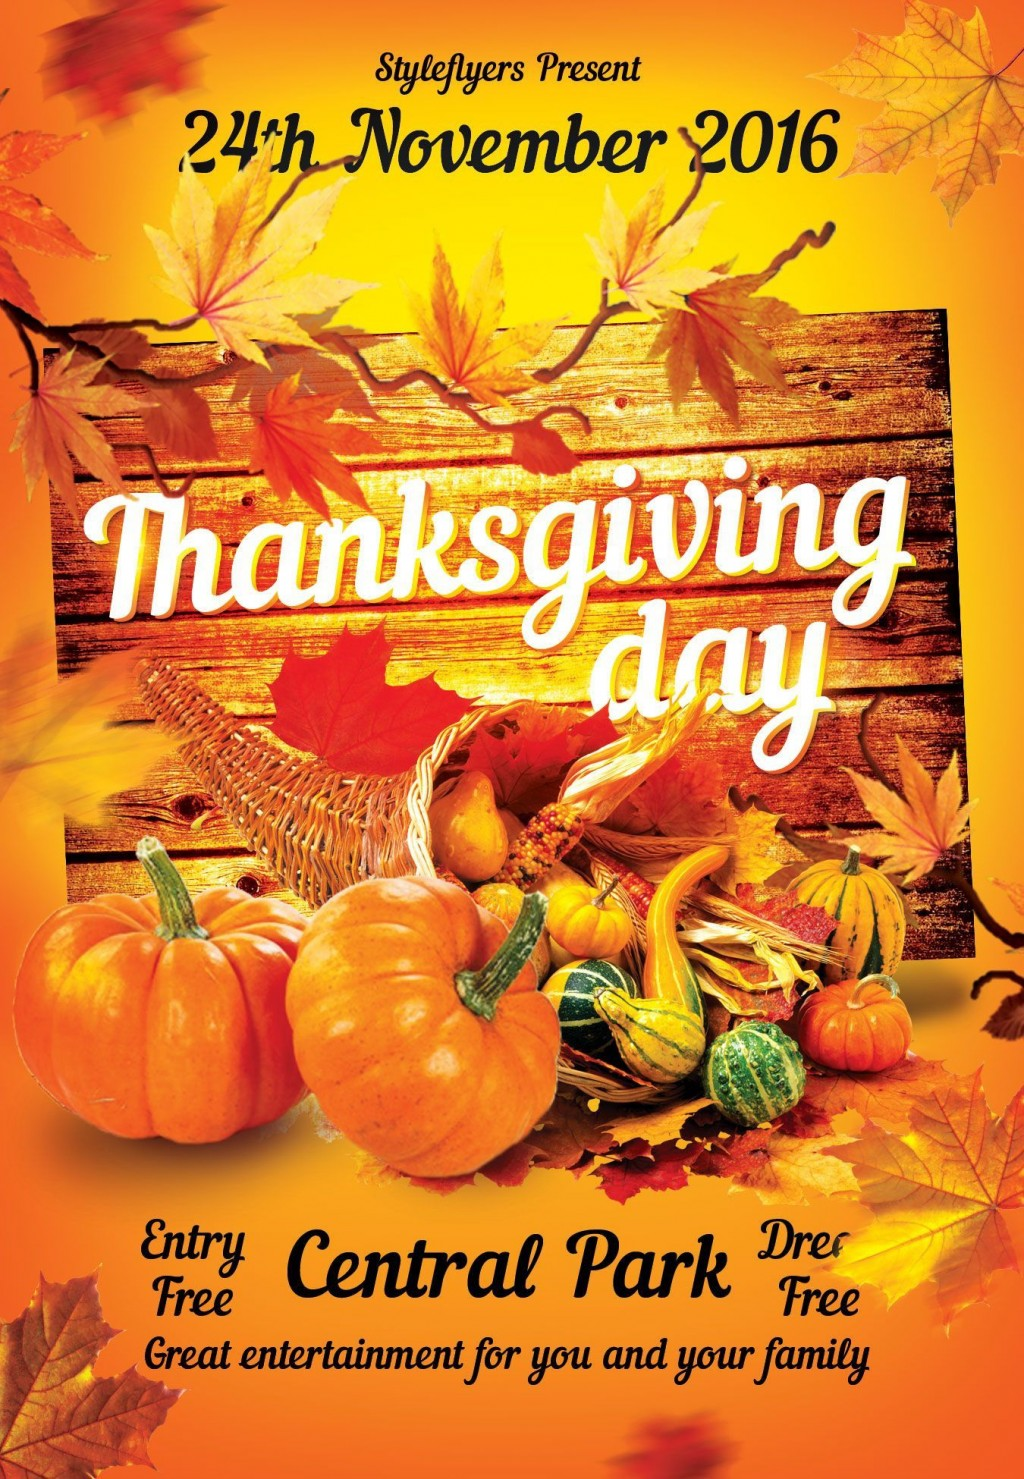 001 Magnificent Thanksgiving Flyer Template Free Example  Food Drive PartyLarge